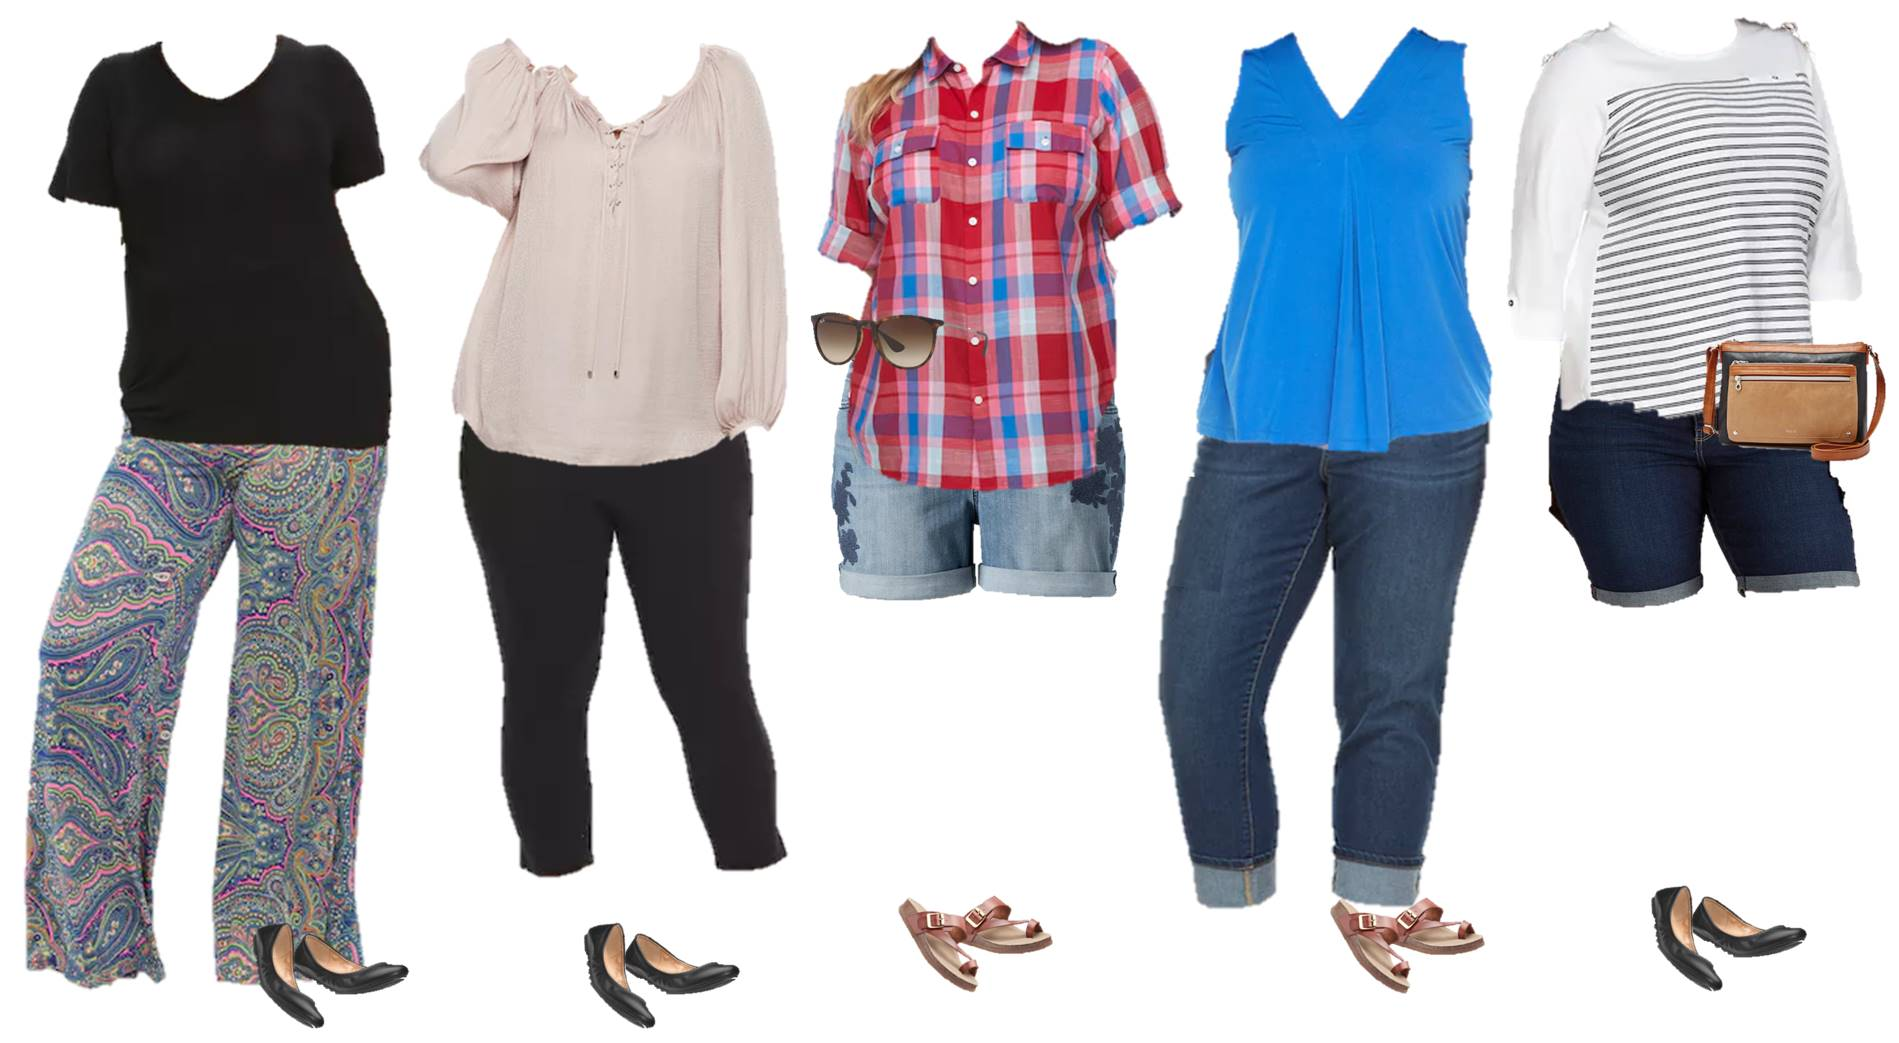 plus size capsule wardrobe for spring